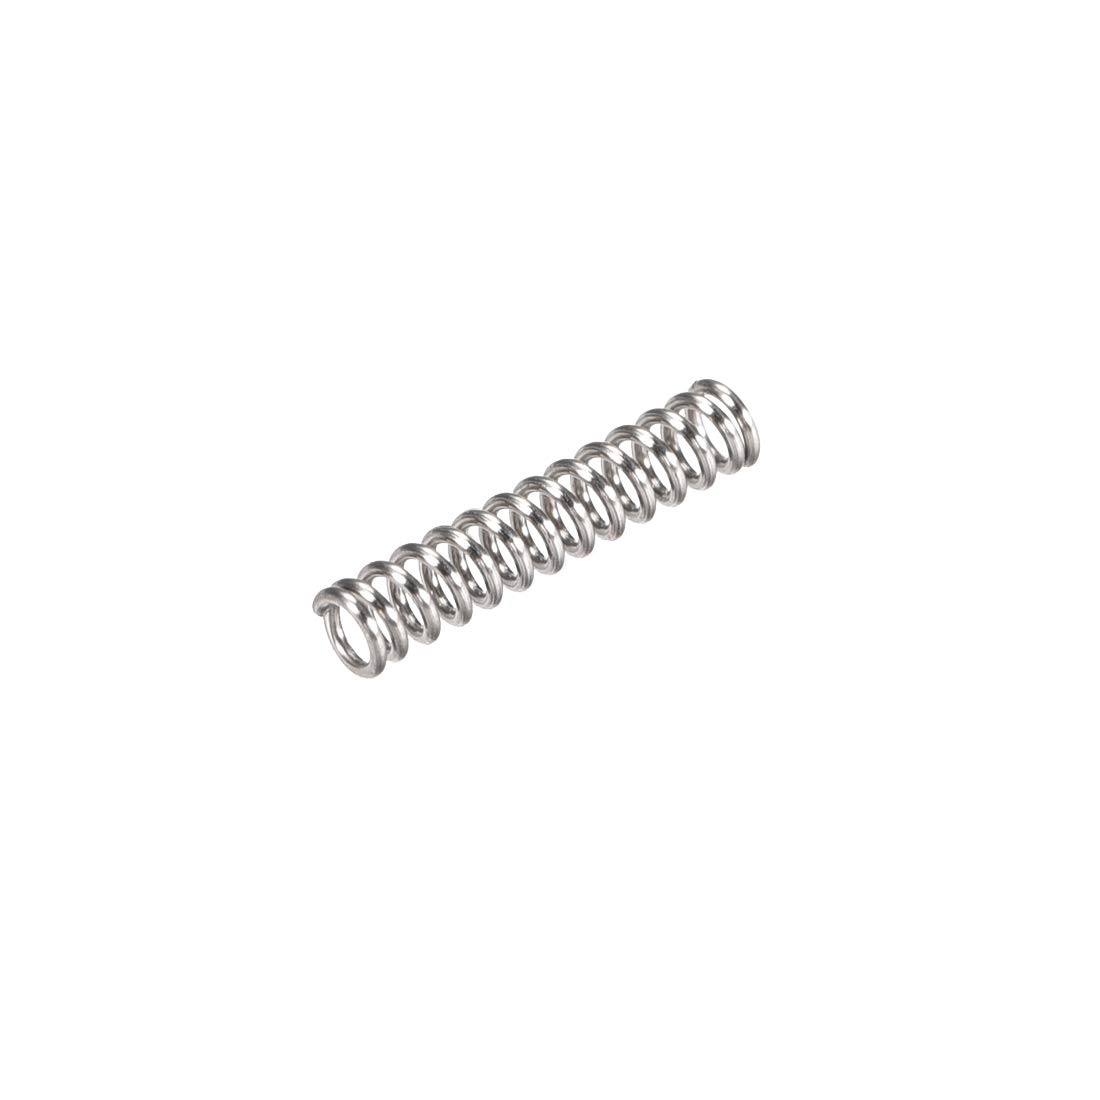 uxcell Compression Spring,304 Stainless Steel,3mm OD,0.5mm Wire Size,9mm Compressed Length,15mm Free Length,4N Load Capacity,Silver Tone,20pcs